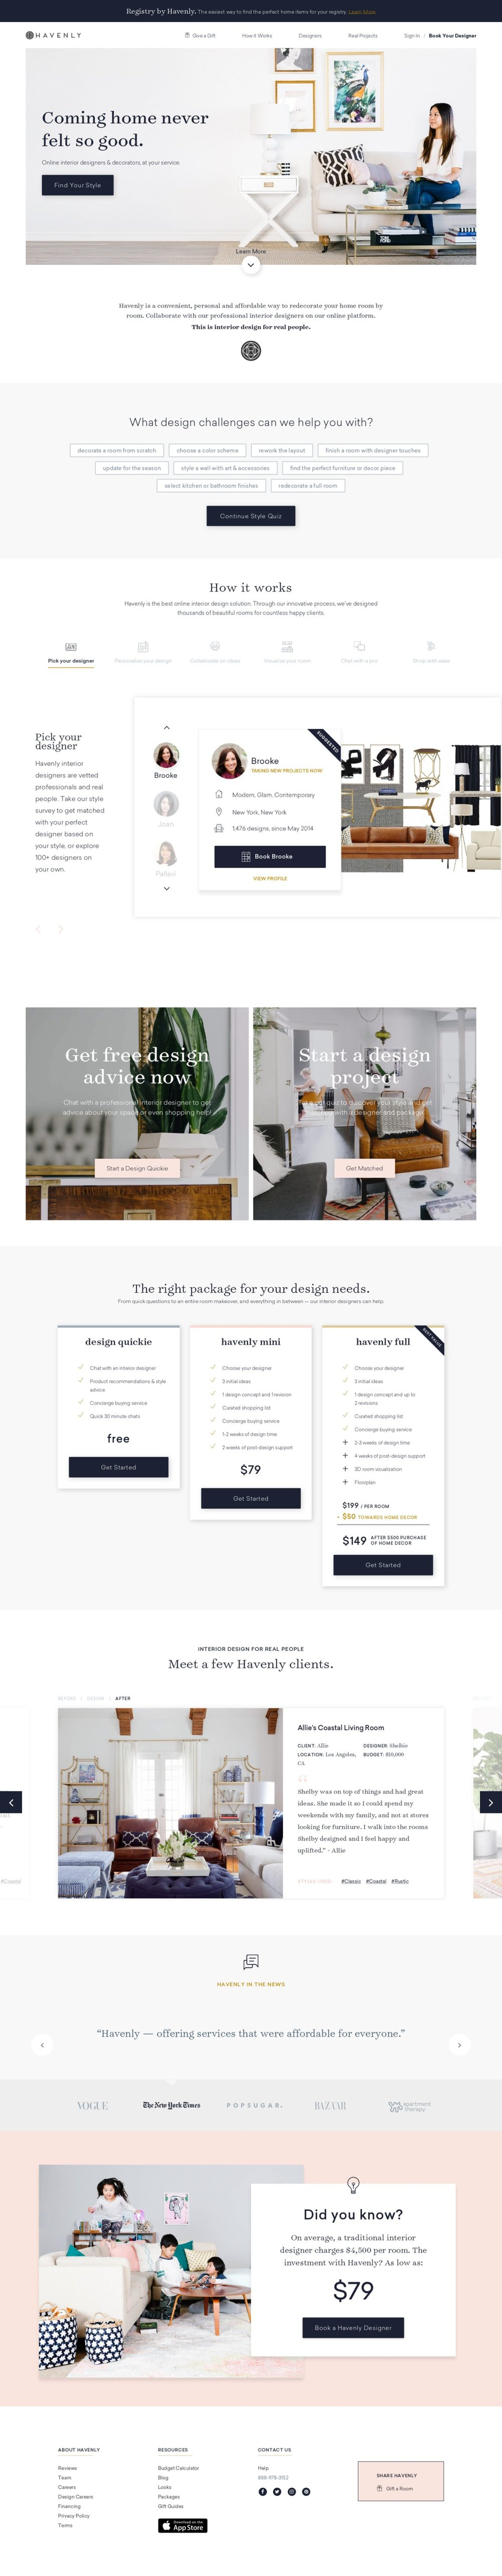 havenly homepage